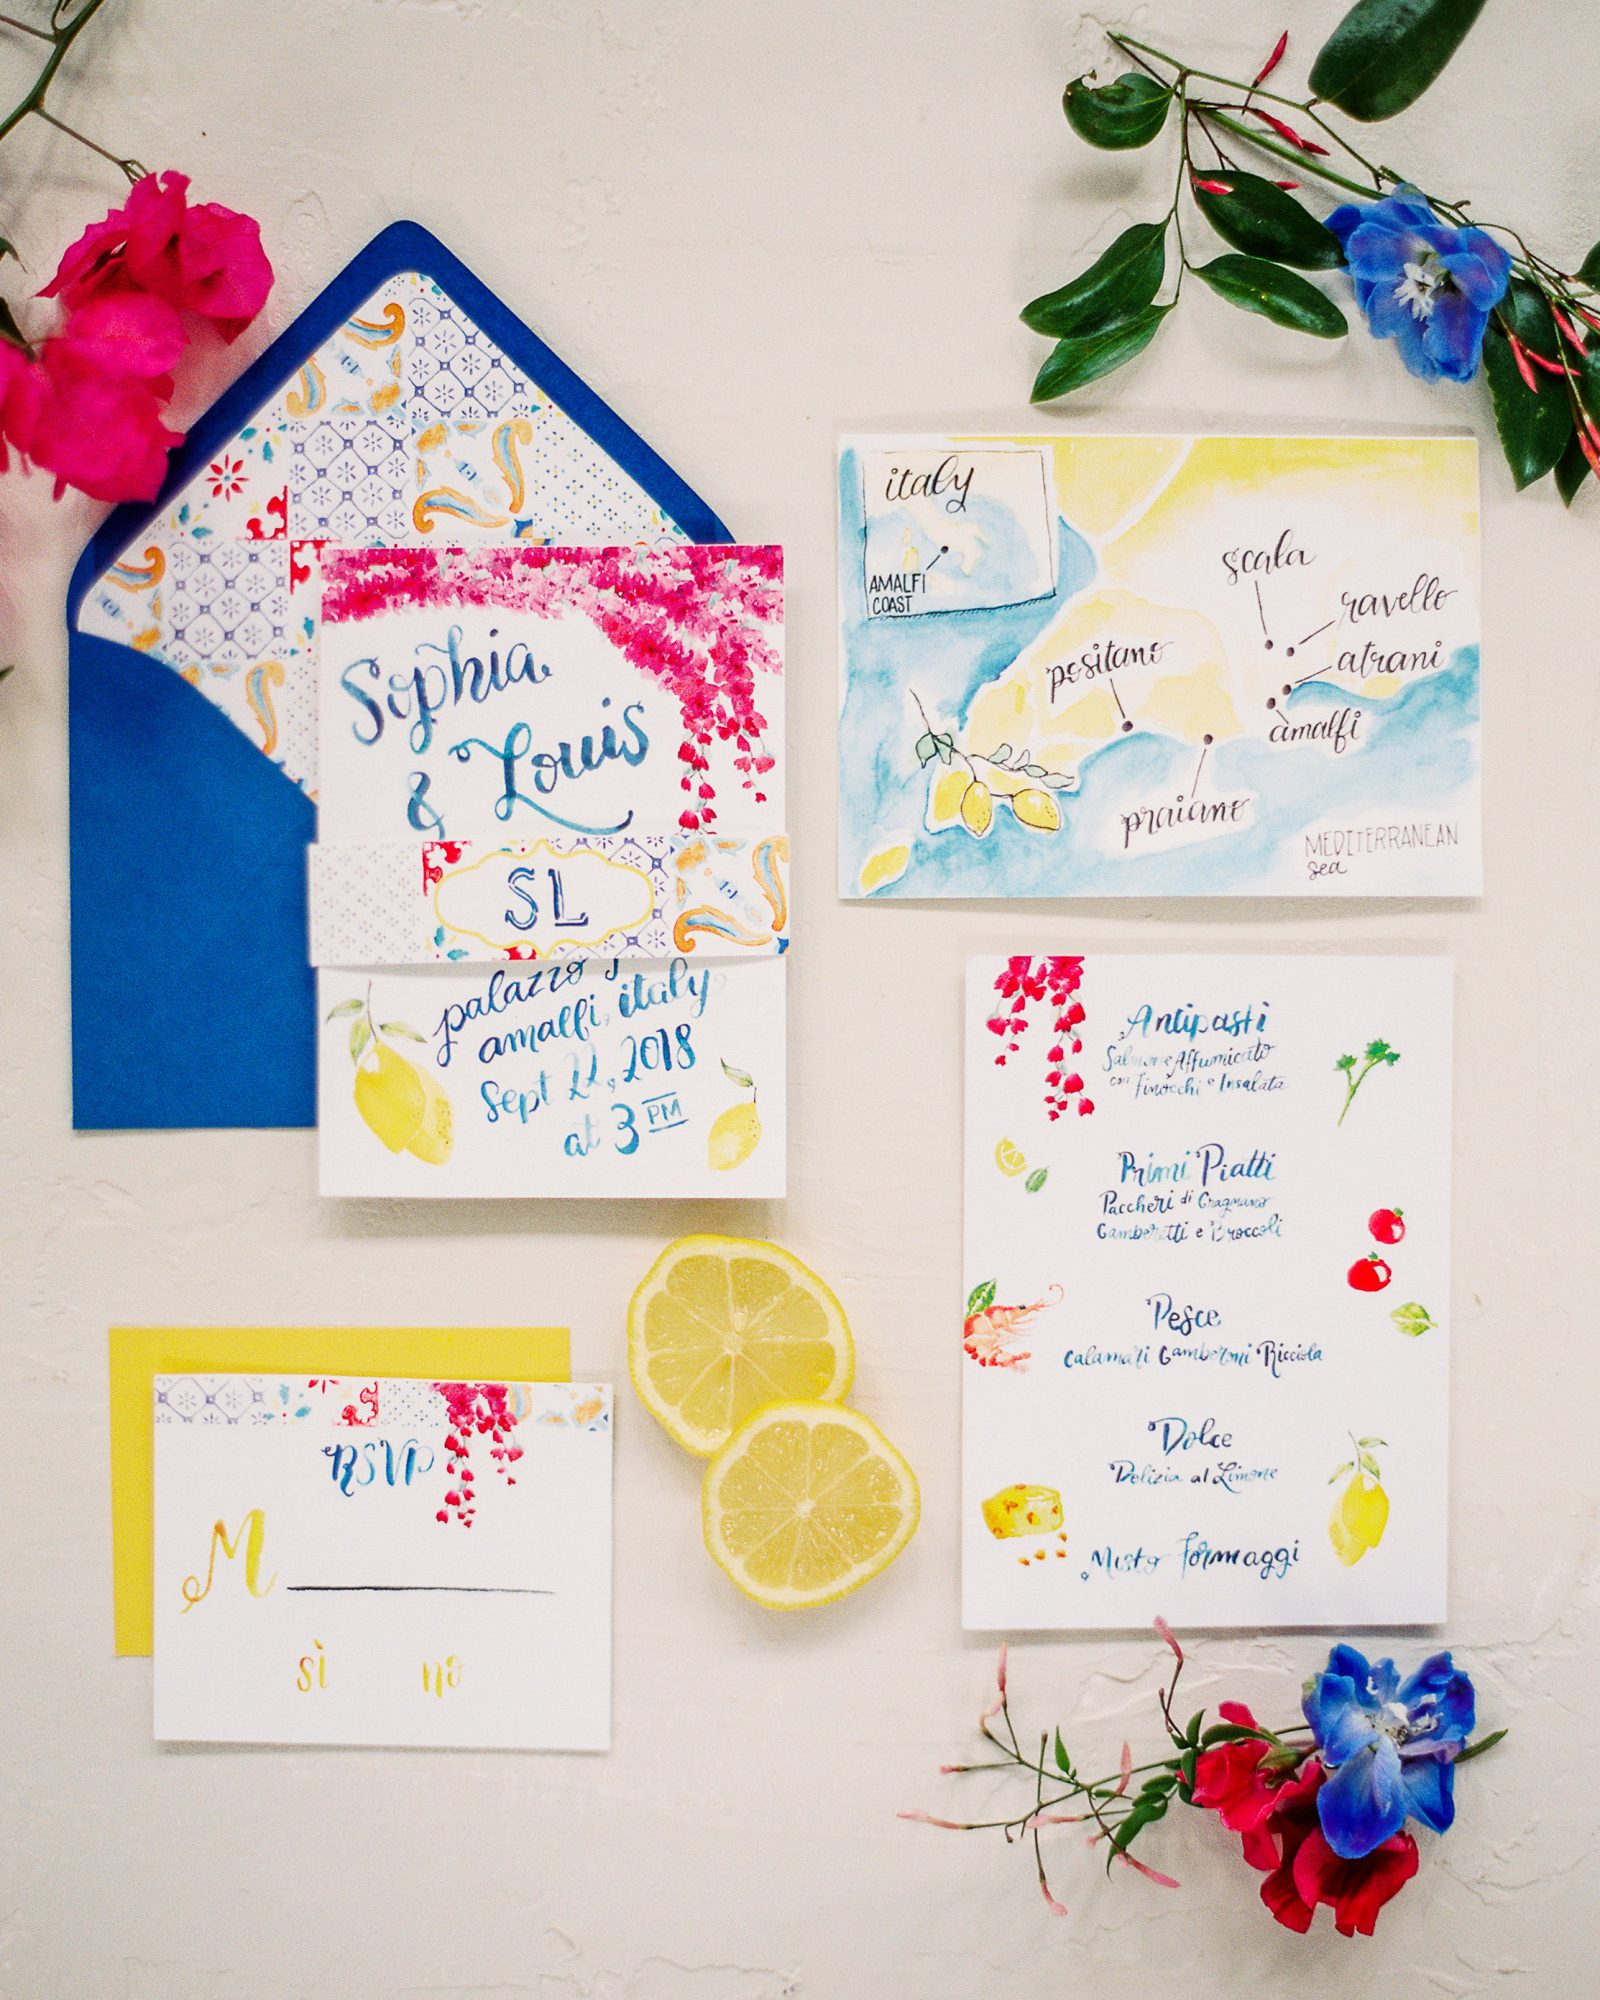 Jessica Frampton designed this lemon-infused stationery suite with the Amalfi coast in mind.